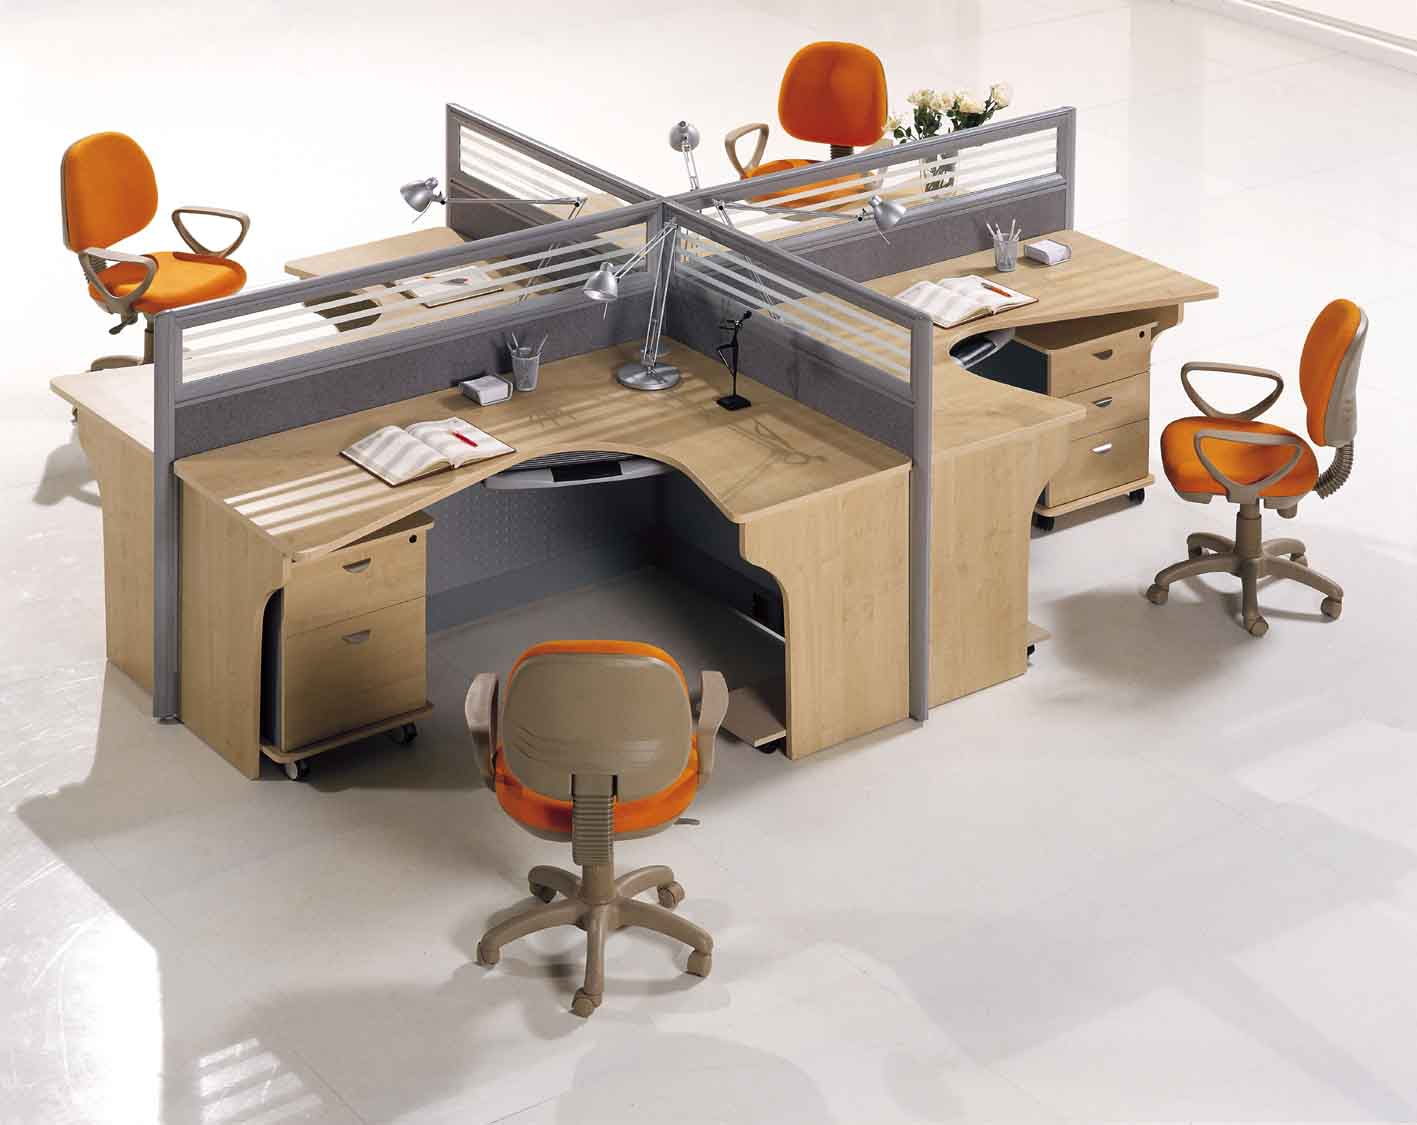 Office Furniture Ideas Layout Of Cubicle Designs Mesmerizing Small Space Decorating Acnn Decor